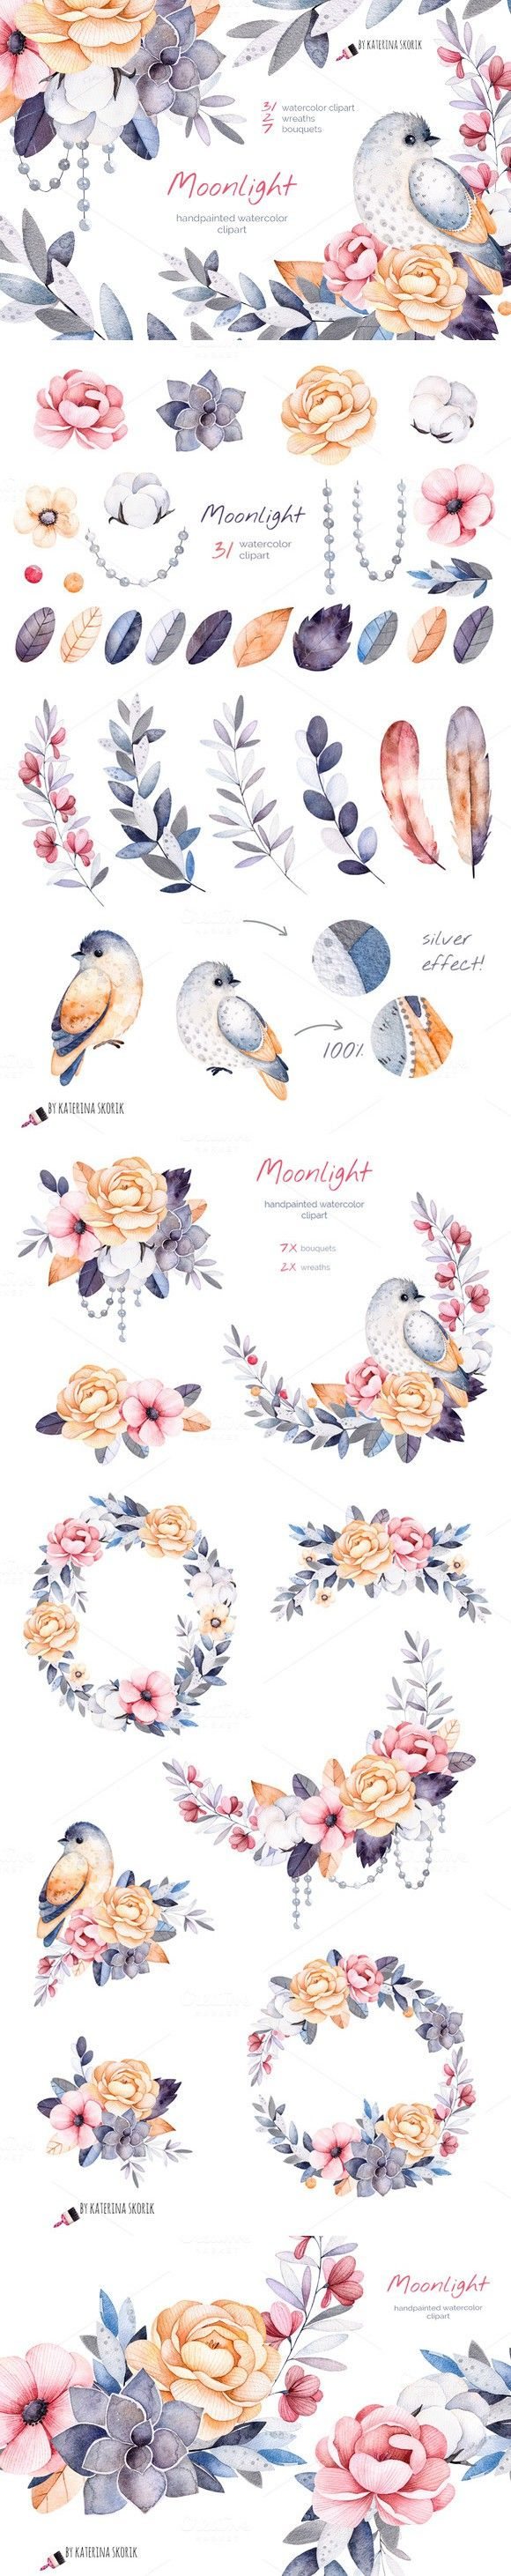 Moonlight. Watercolor collection. Thanksgiving Invitations. $15.00